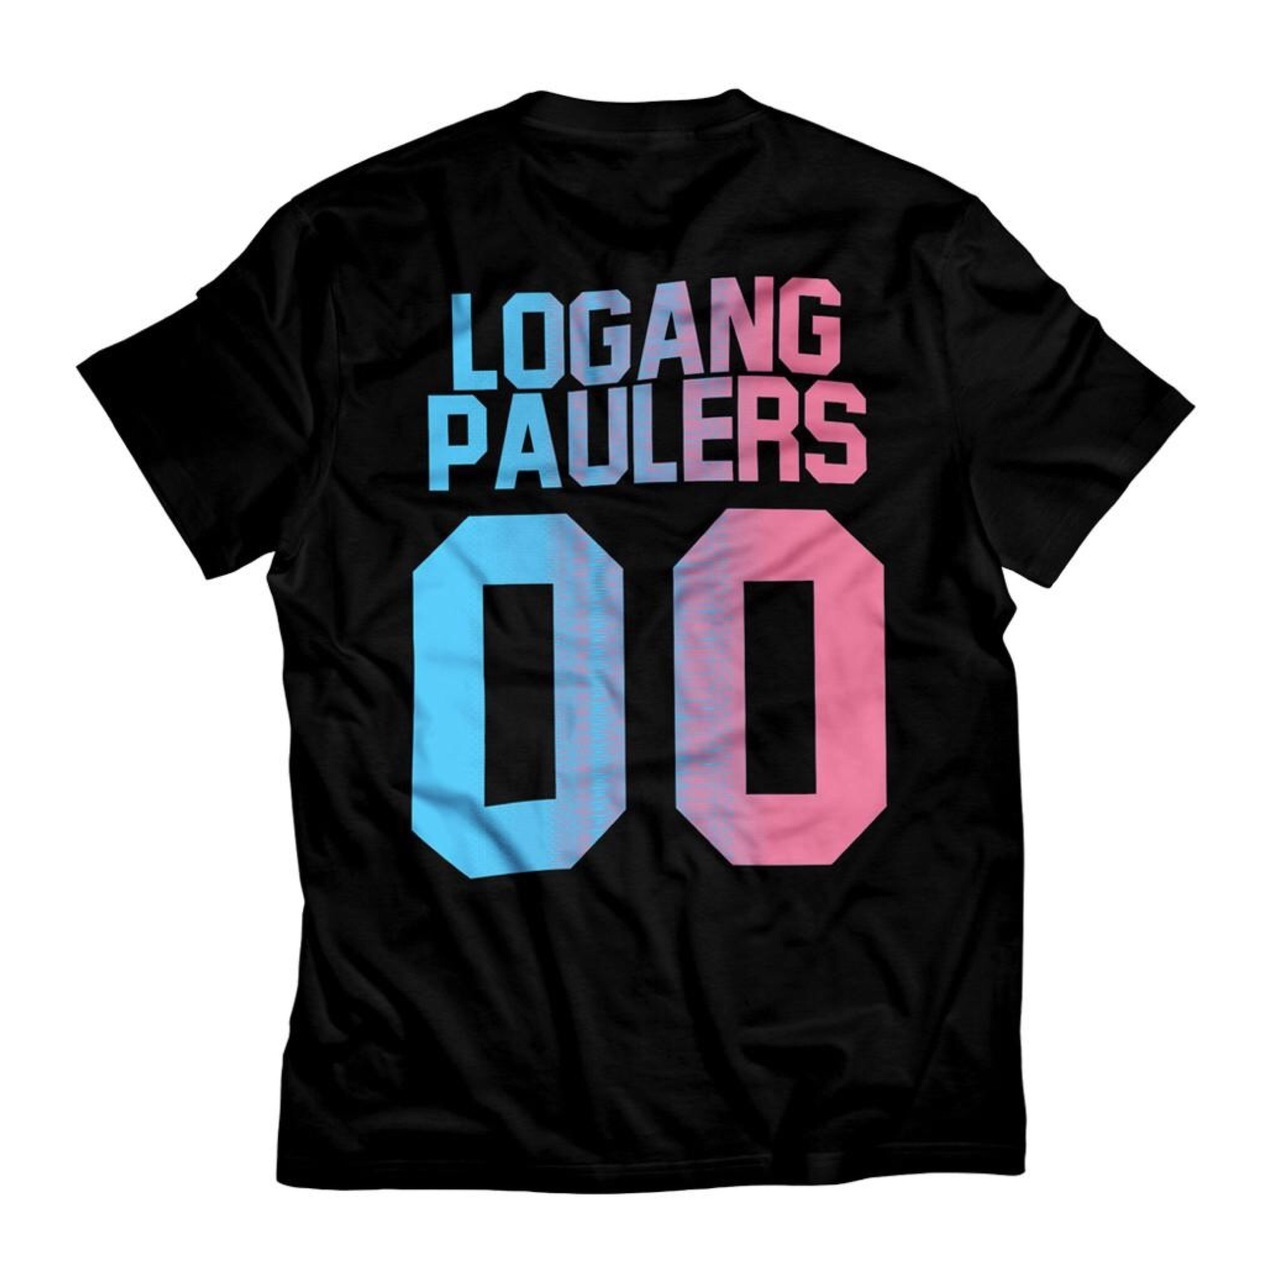 Logang paulers😝😝😝😝 uploaded by k